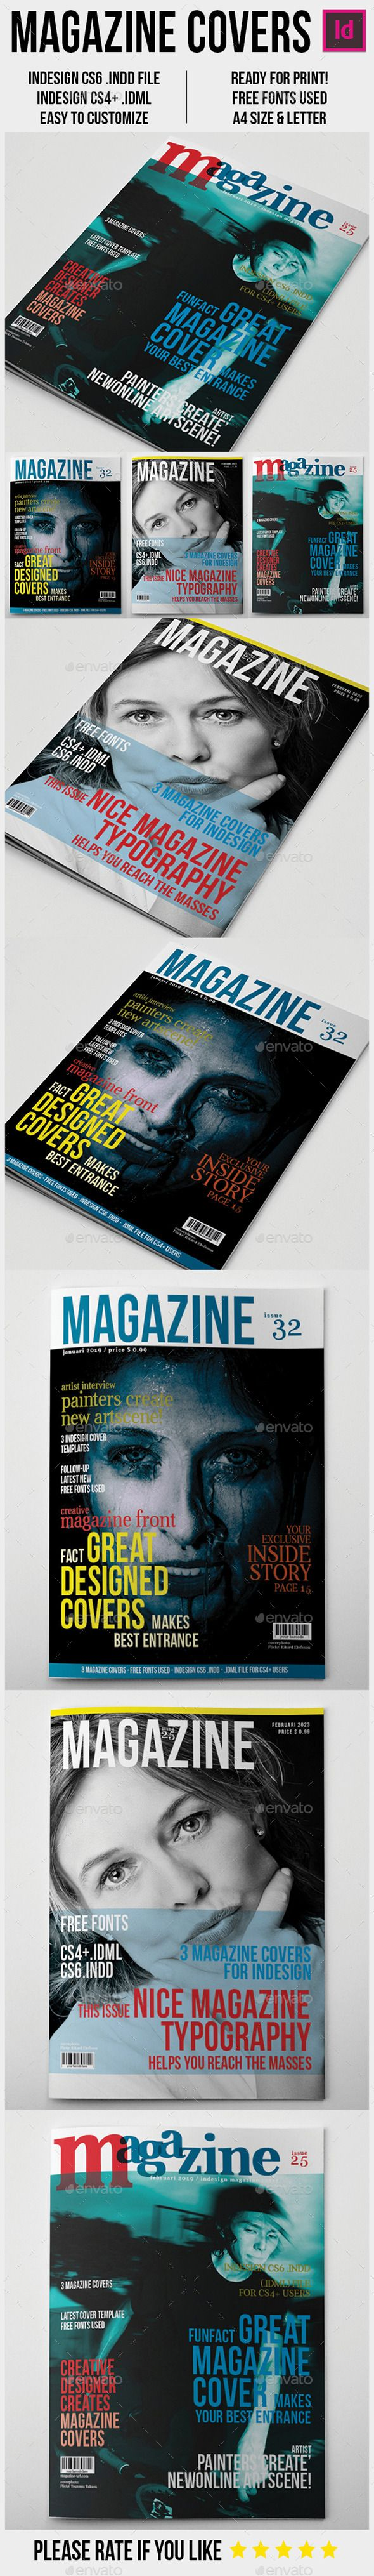 Magazine Covers Template A4 | Magazine cover template, Template and ...